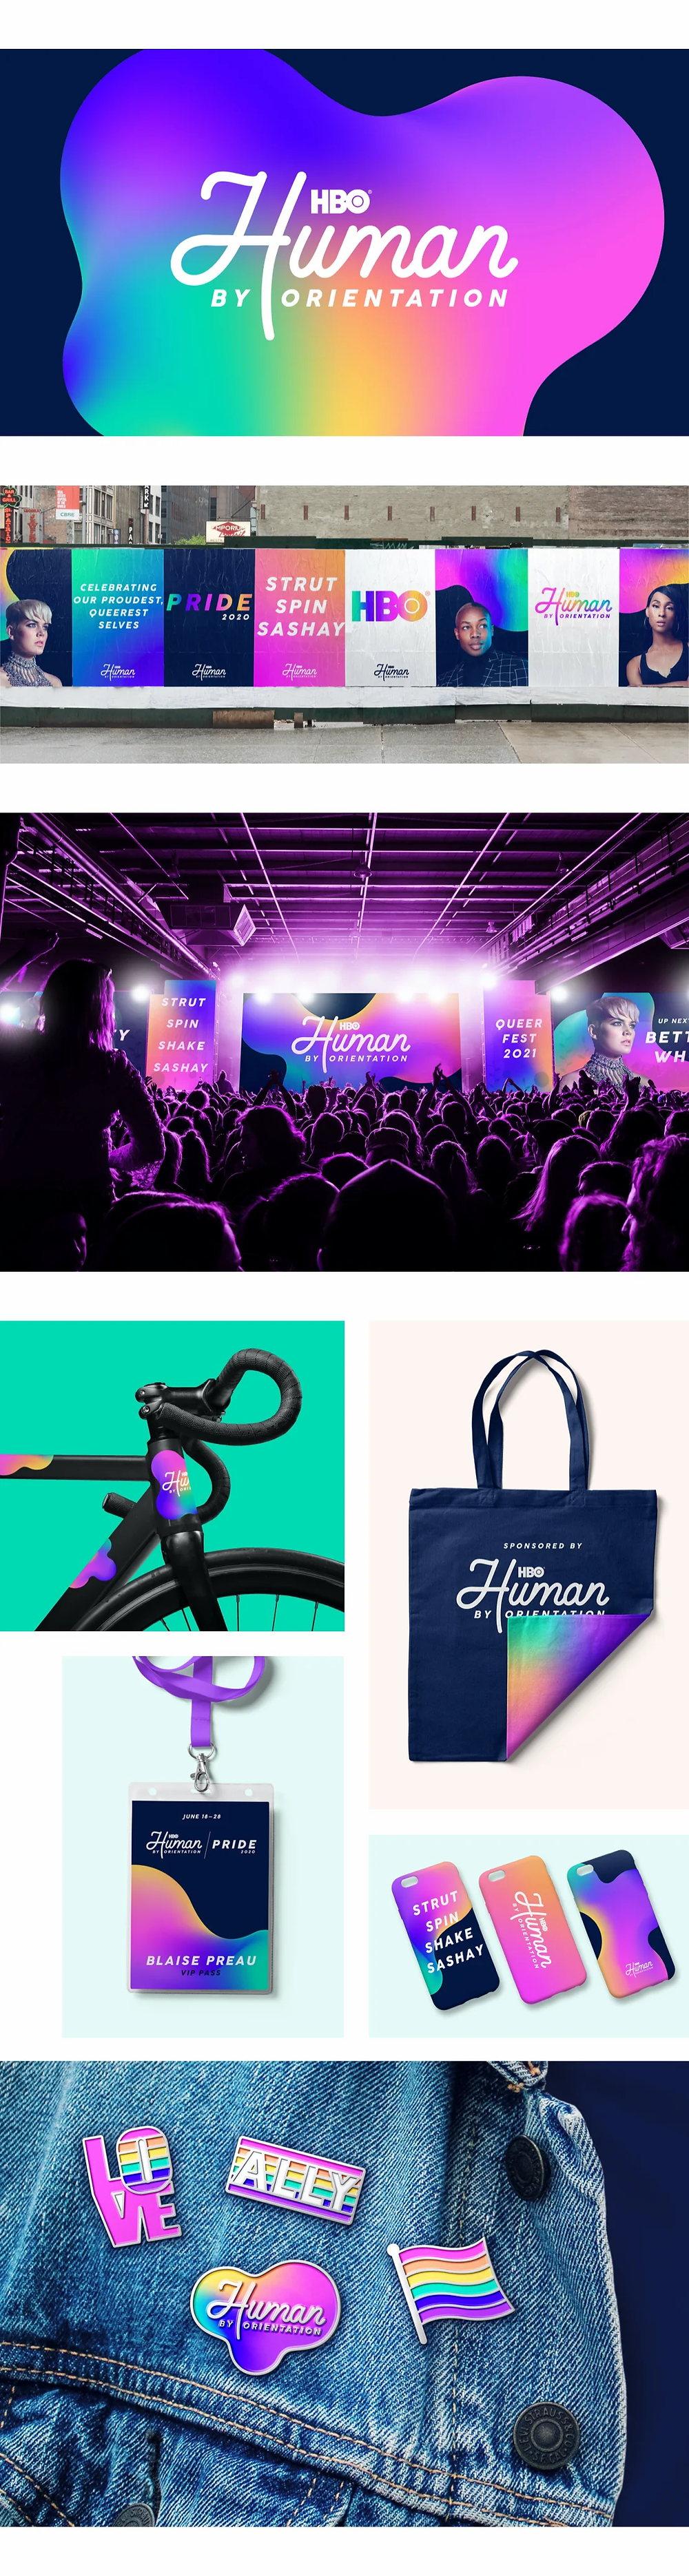 Best branding of 2020: Human After All's visual identity for HBO's Human by Orientation